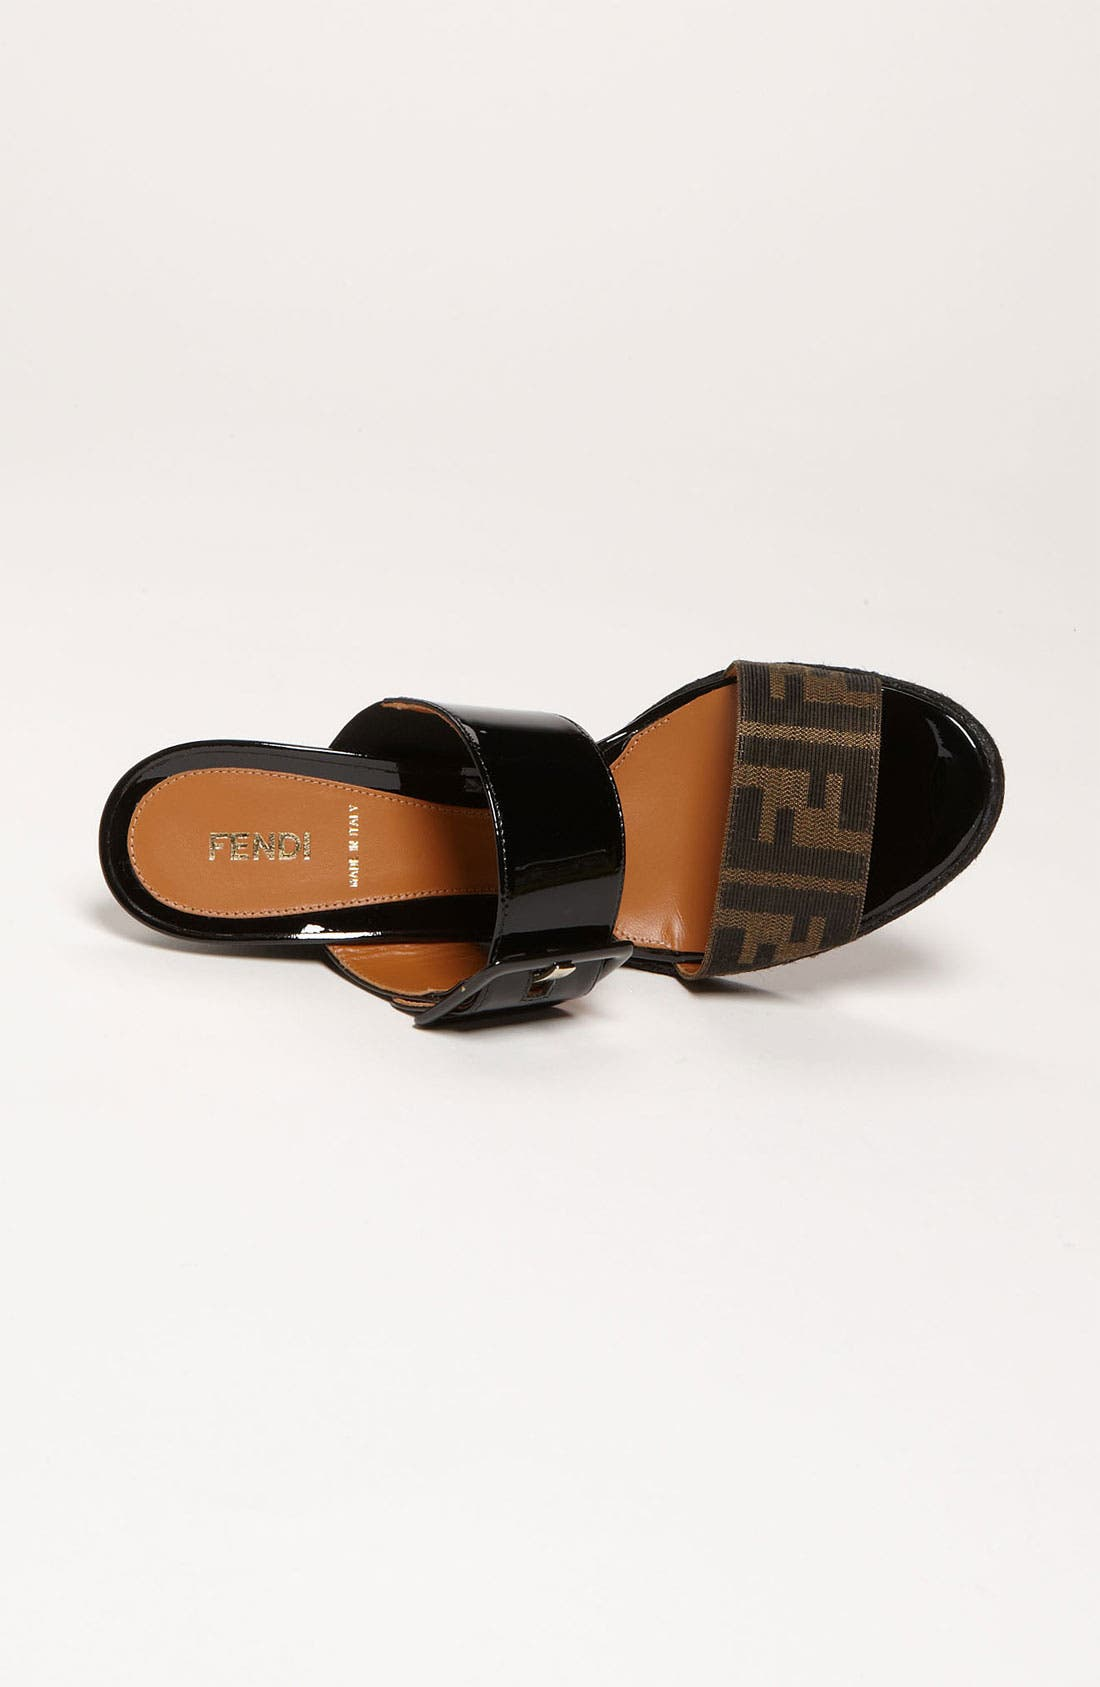 Alternate Image 3  - Fendi 'Vernis' Wedge Sandal (Women)